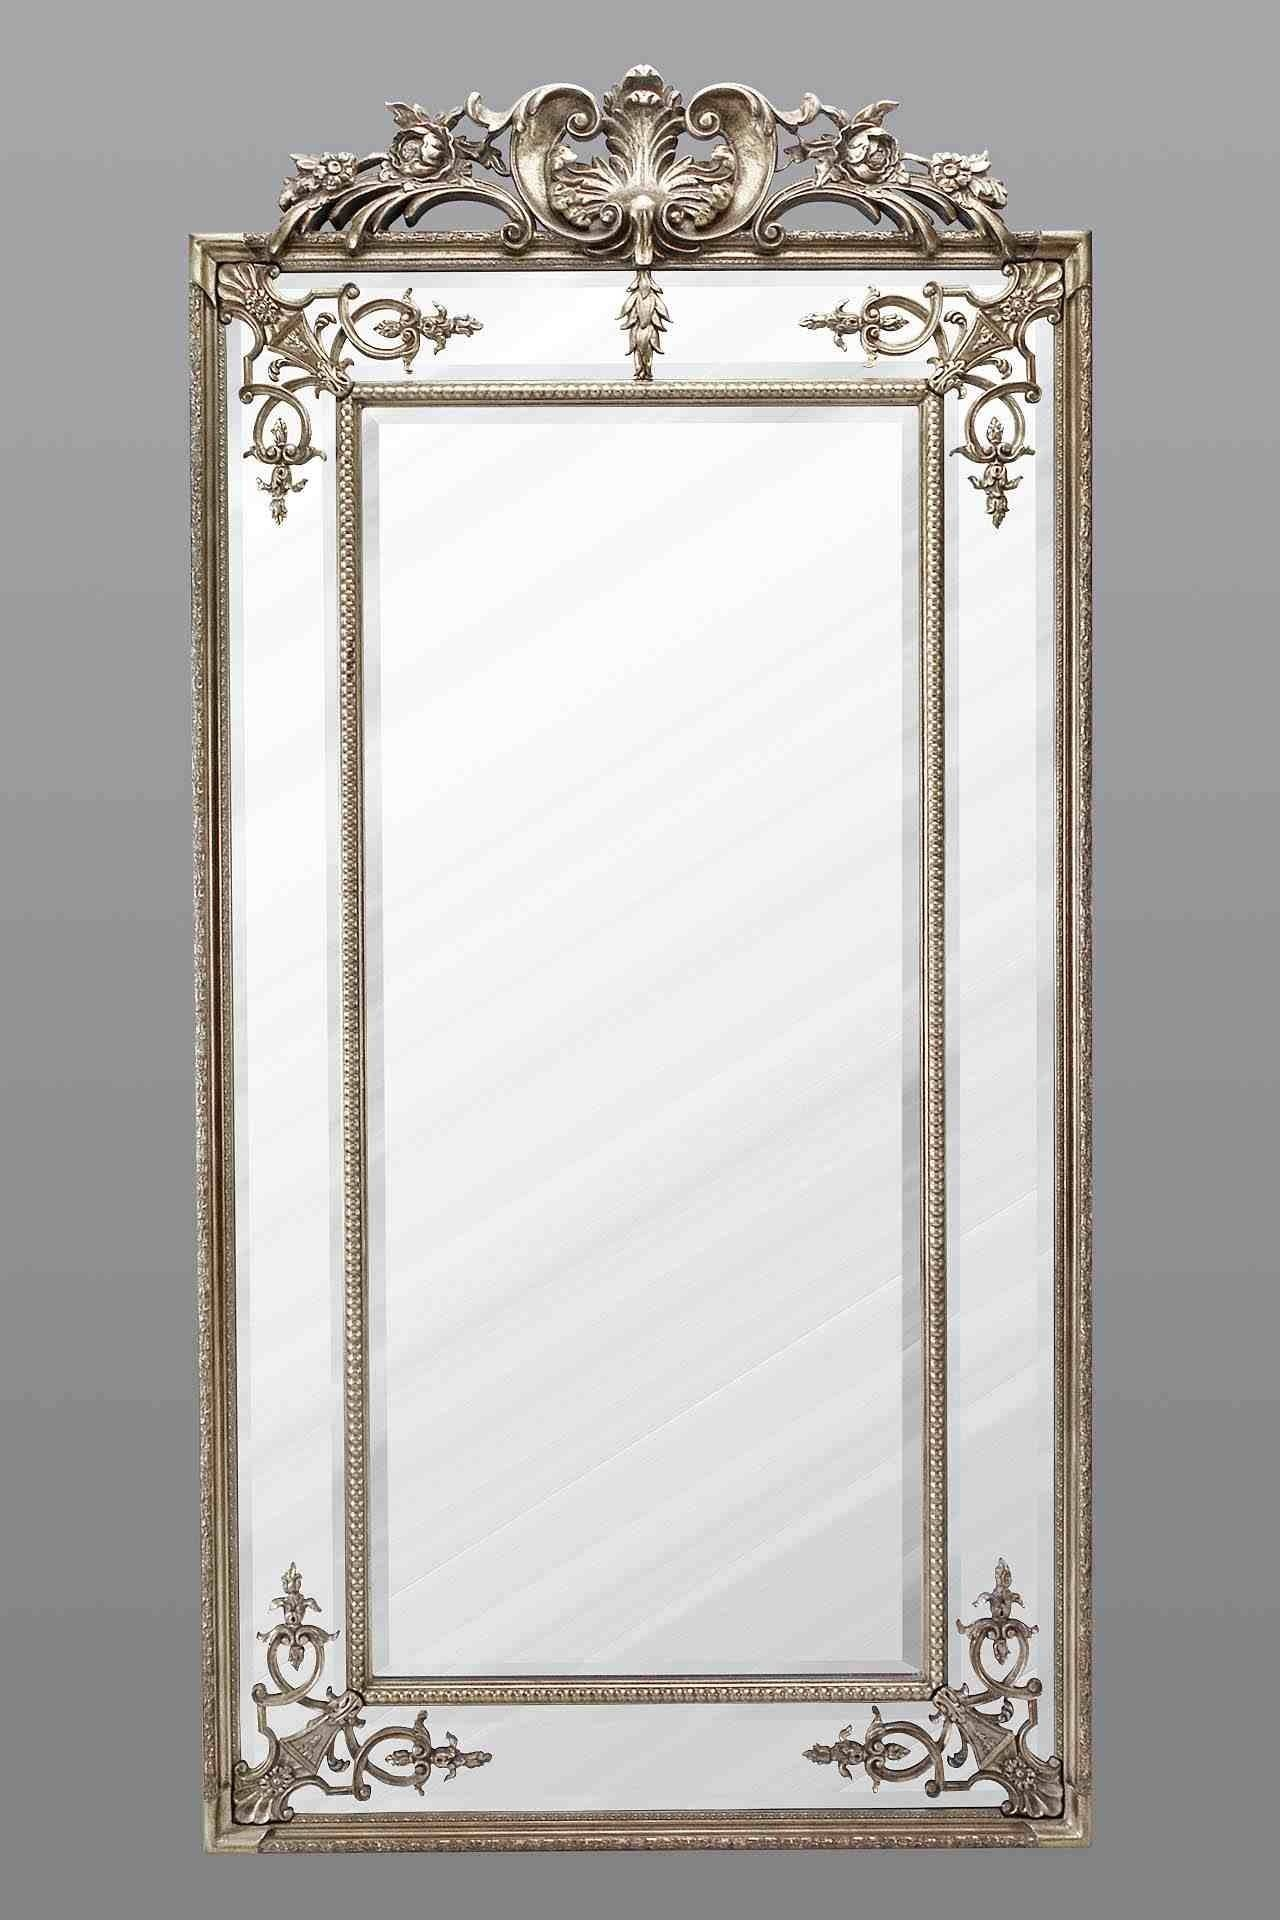 Large Full Length Mirror - Silver throughout Silver Full Length Mirrors (Image 9 of 15)